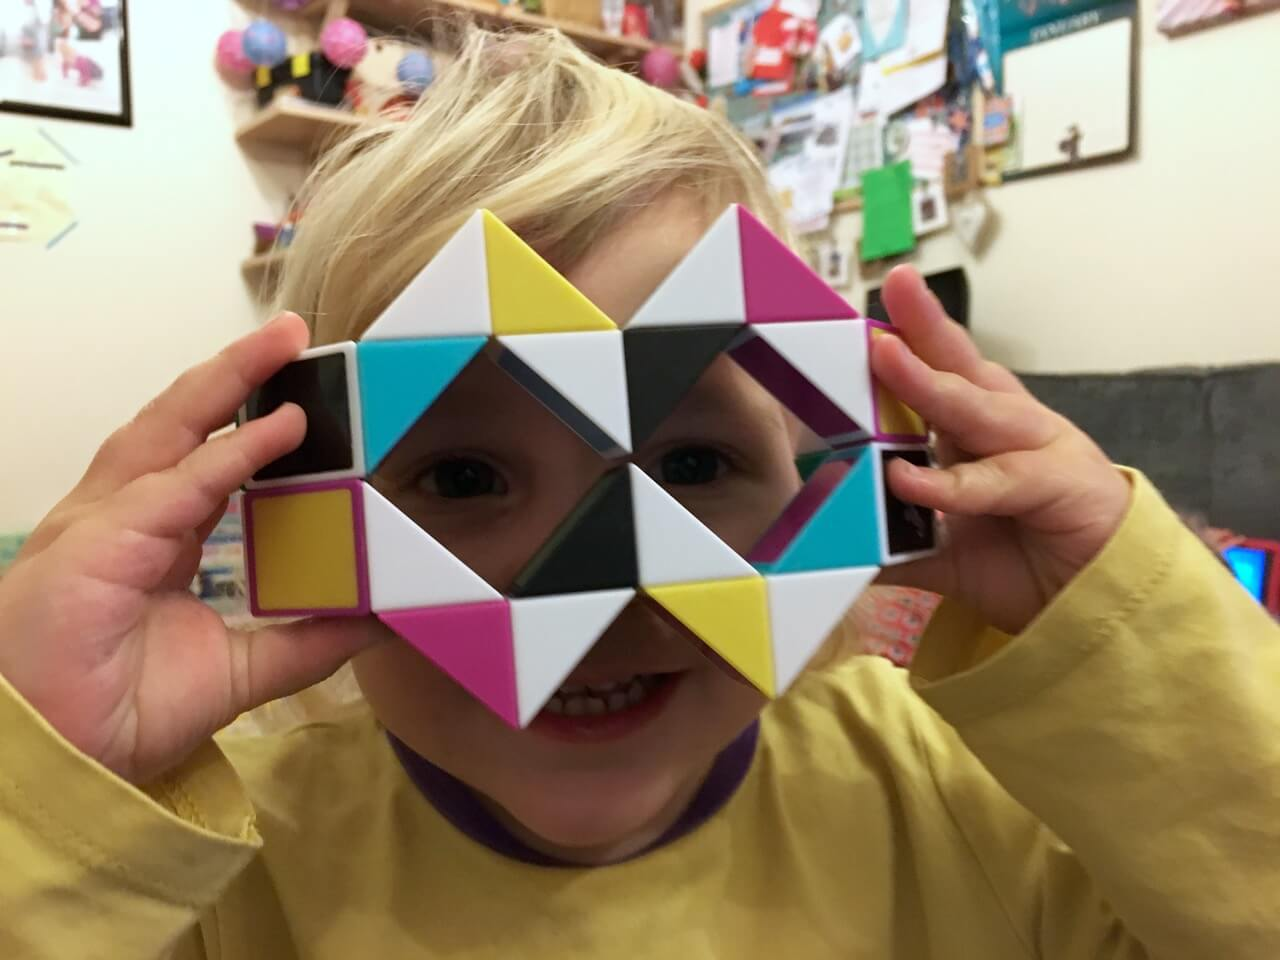 how to make cool things out of smiggle snake puzzle